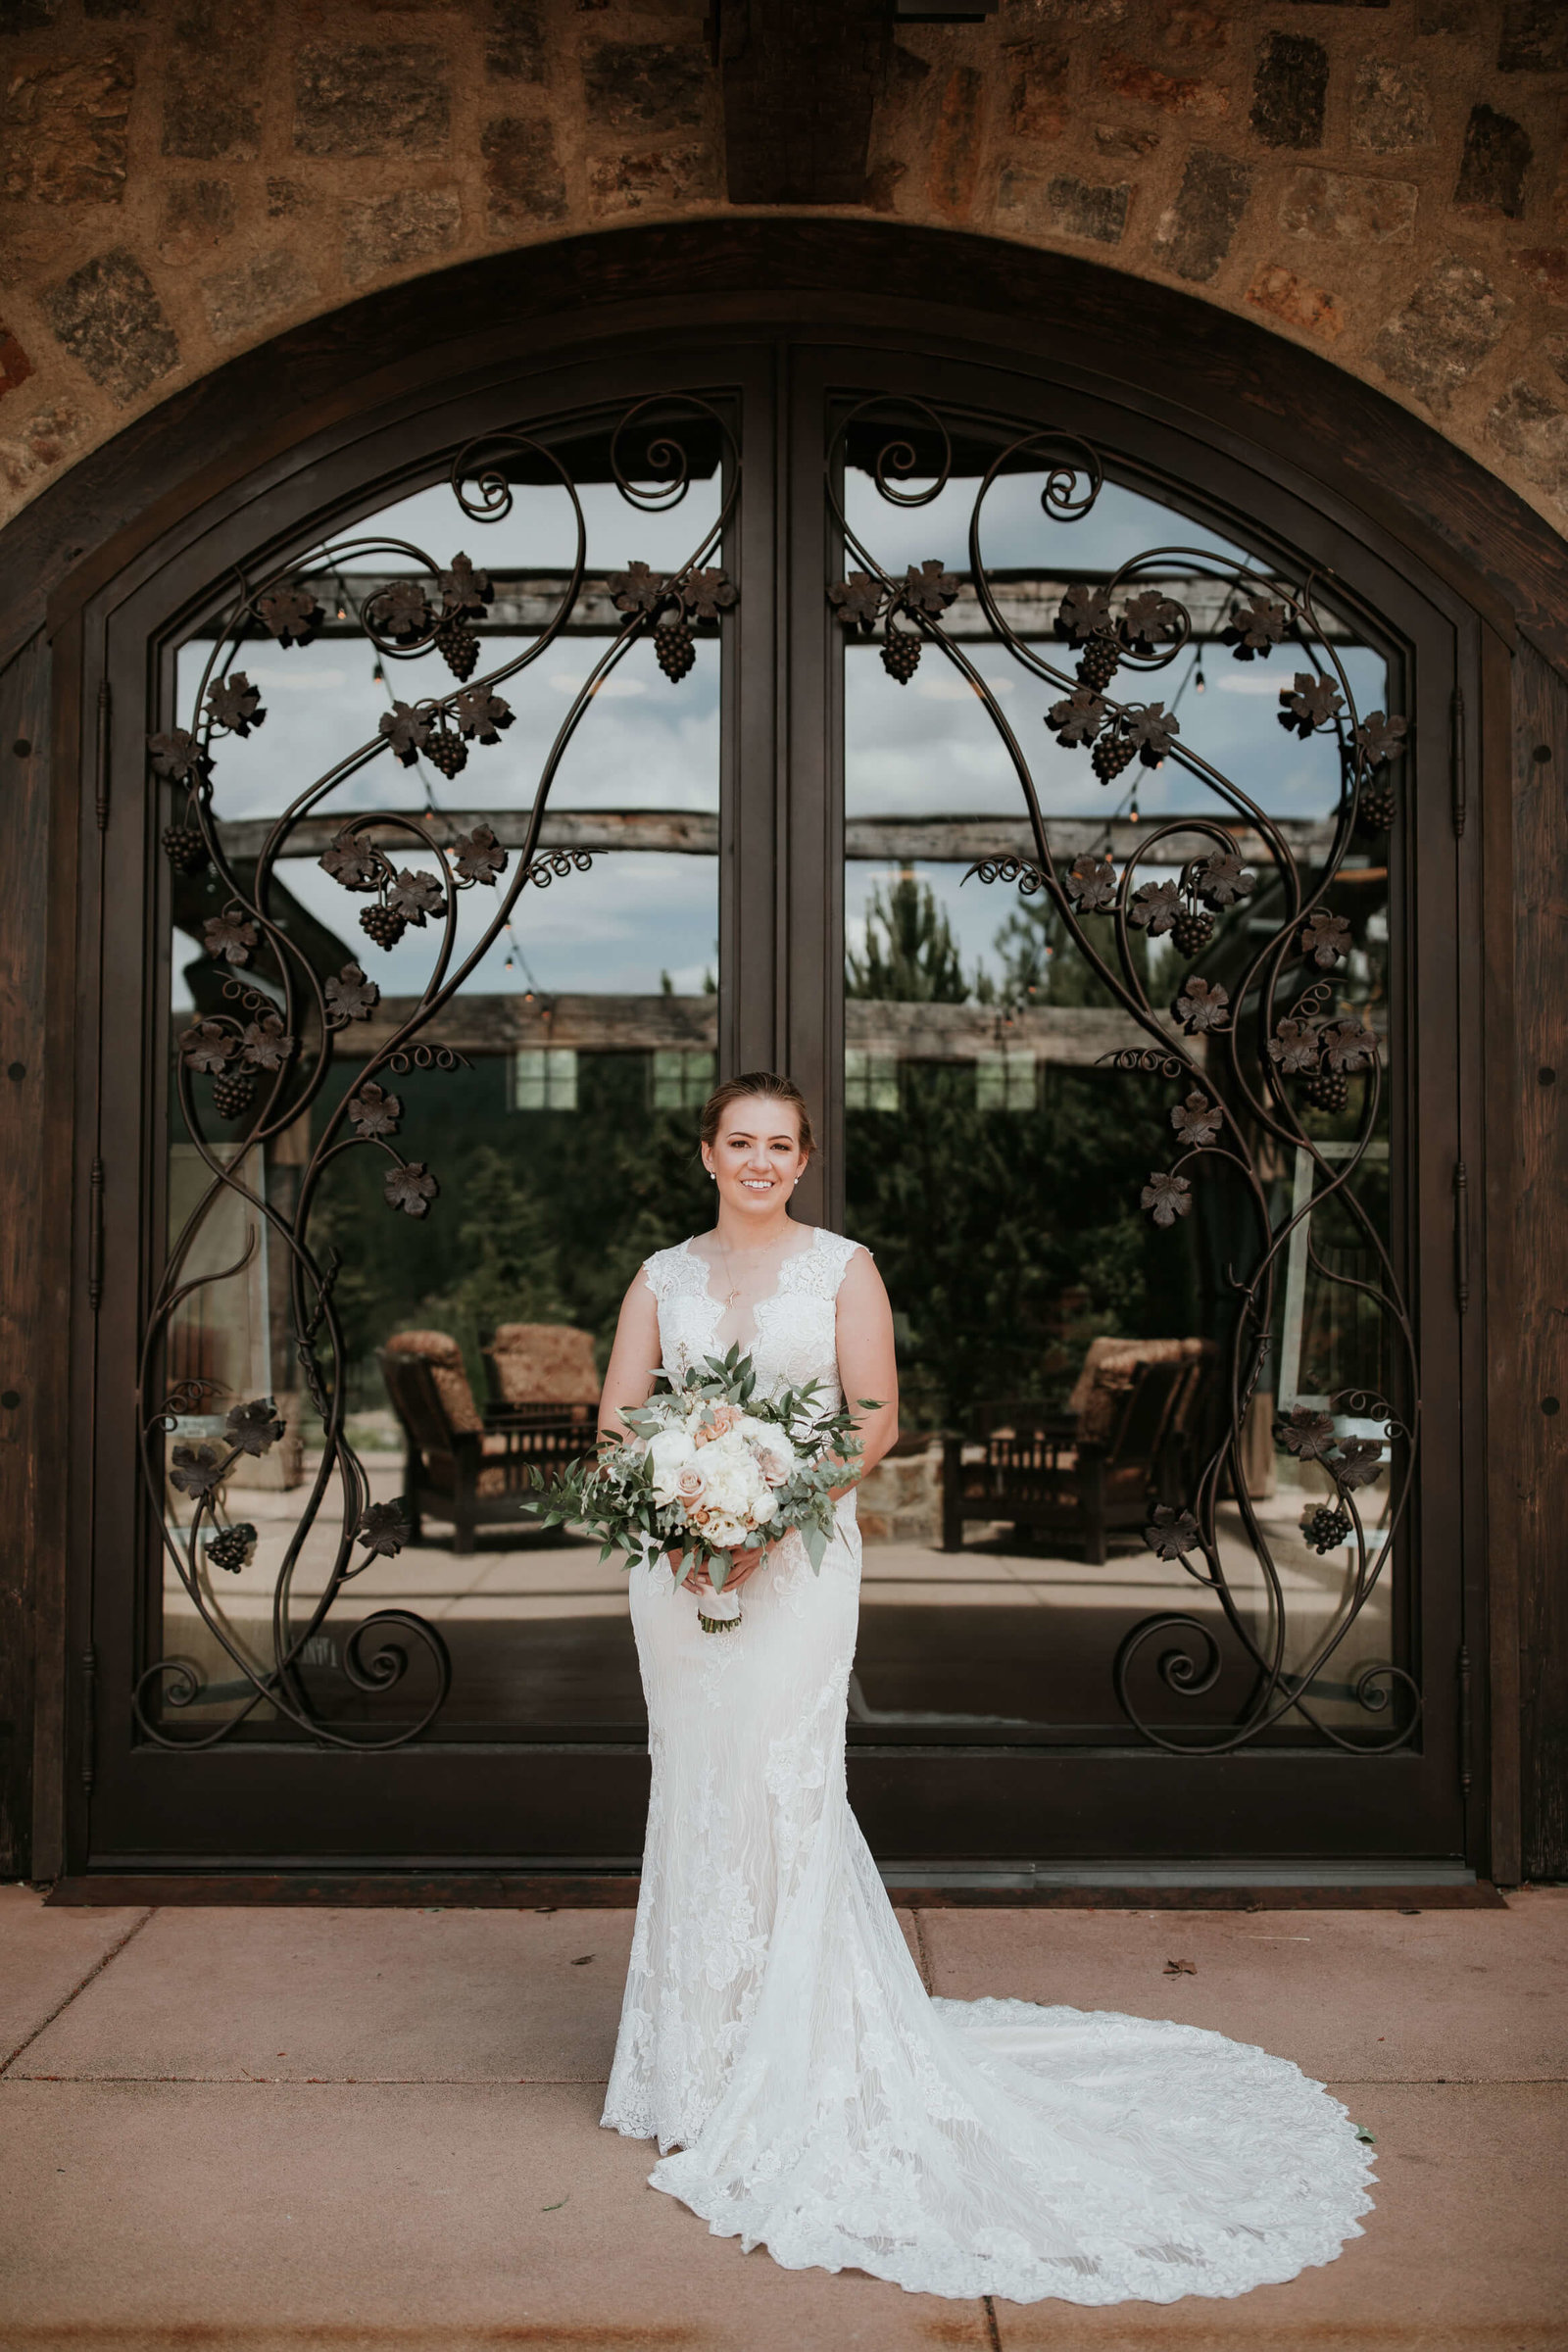 Swiftwater-Cellars-wedding-Lauren-Peter-June-22-by-adina-preston-photography-112